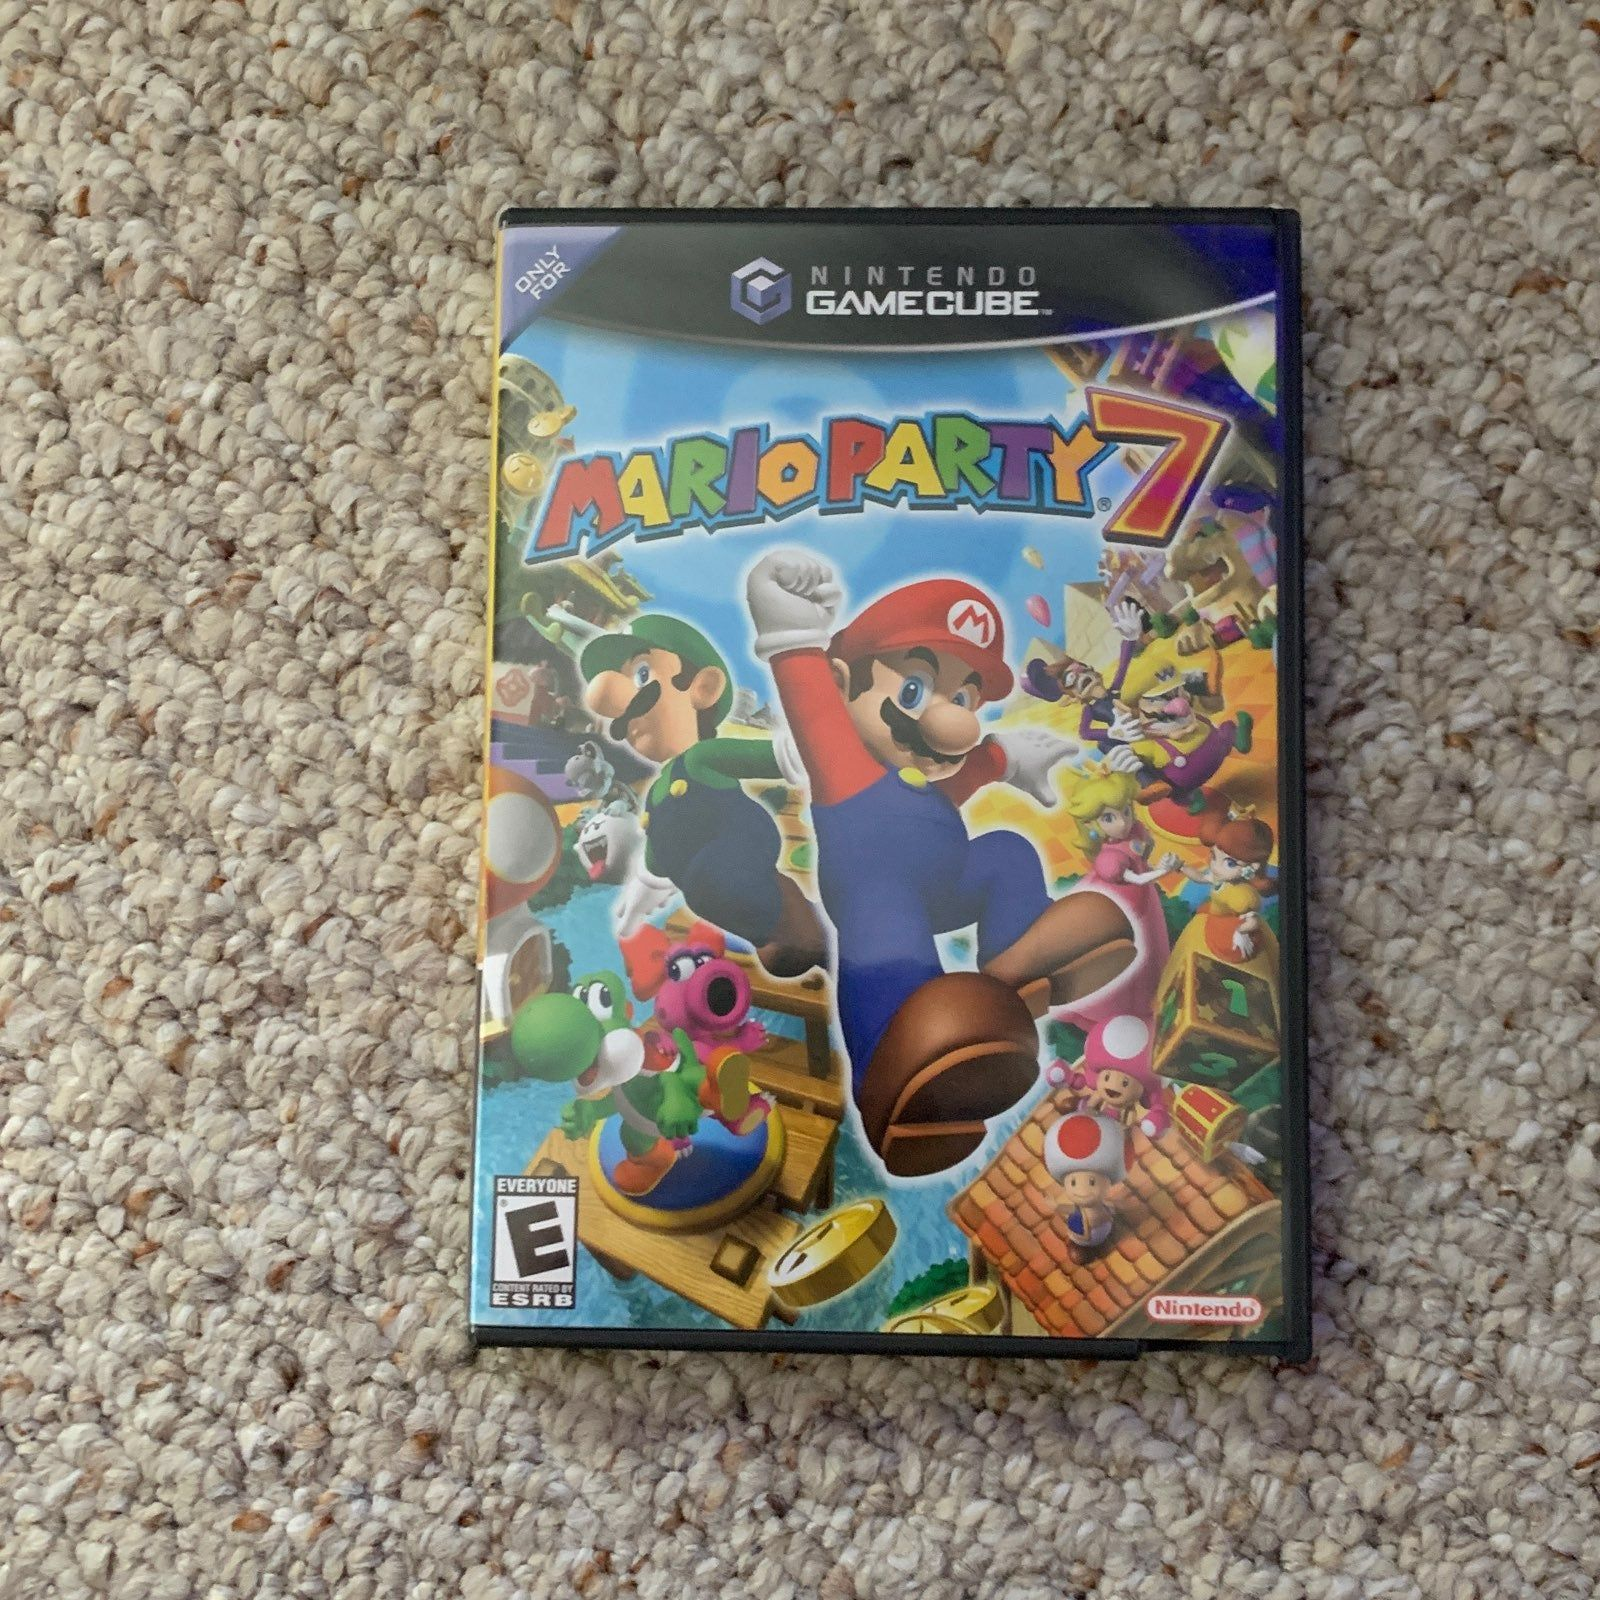 I Am Selling Mario Party 7 For Nintendo Gamecube Comes With Instruction Manual And Original Inserts Disc Runs But Has Some Mario Party 7 Mario Party Gamecube